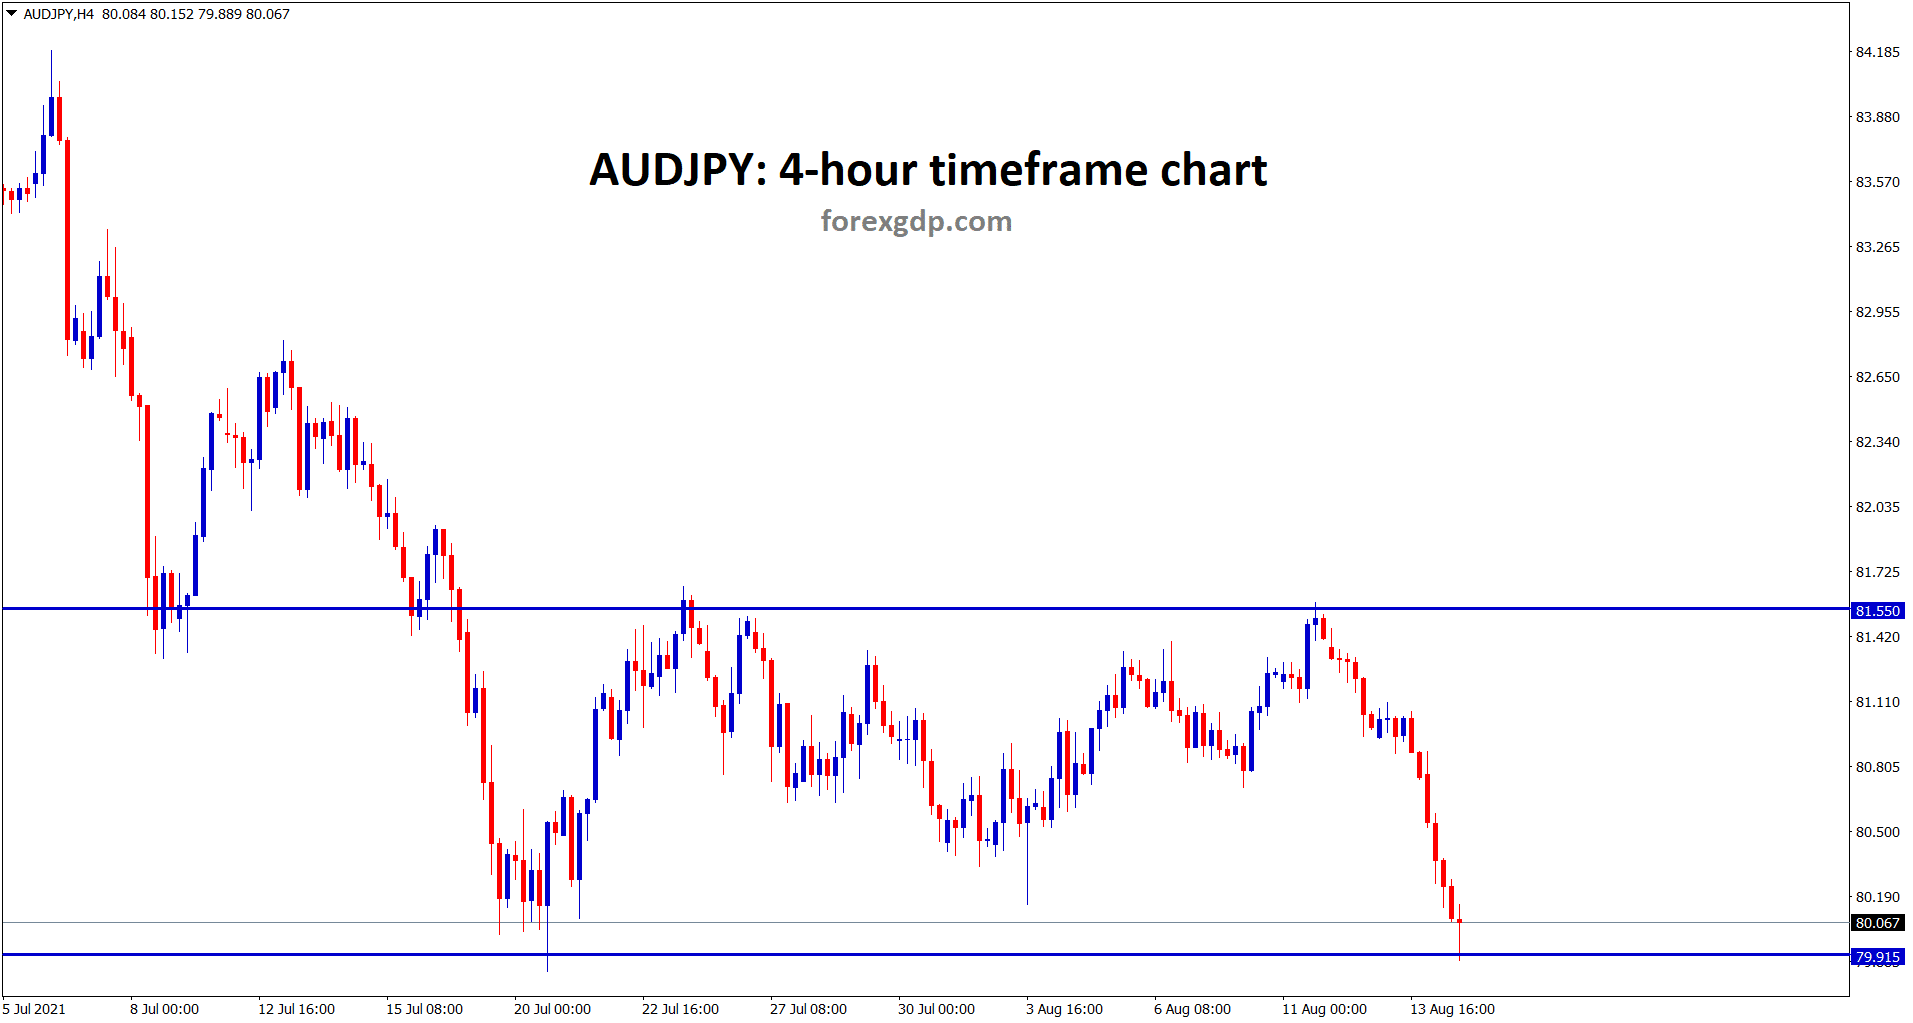 AUDJPY hits the support level now